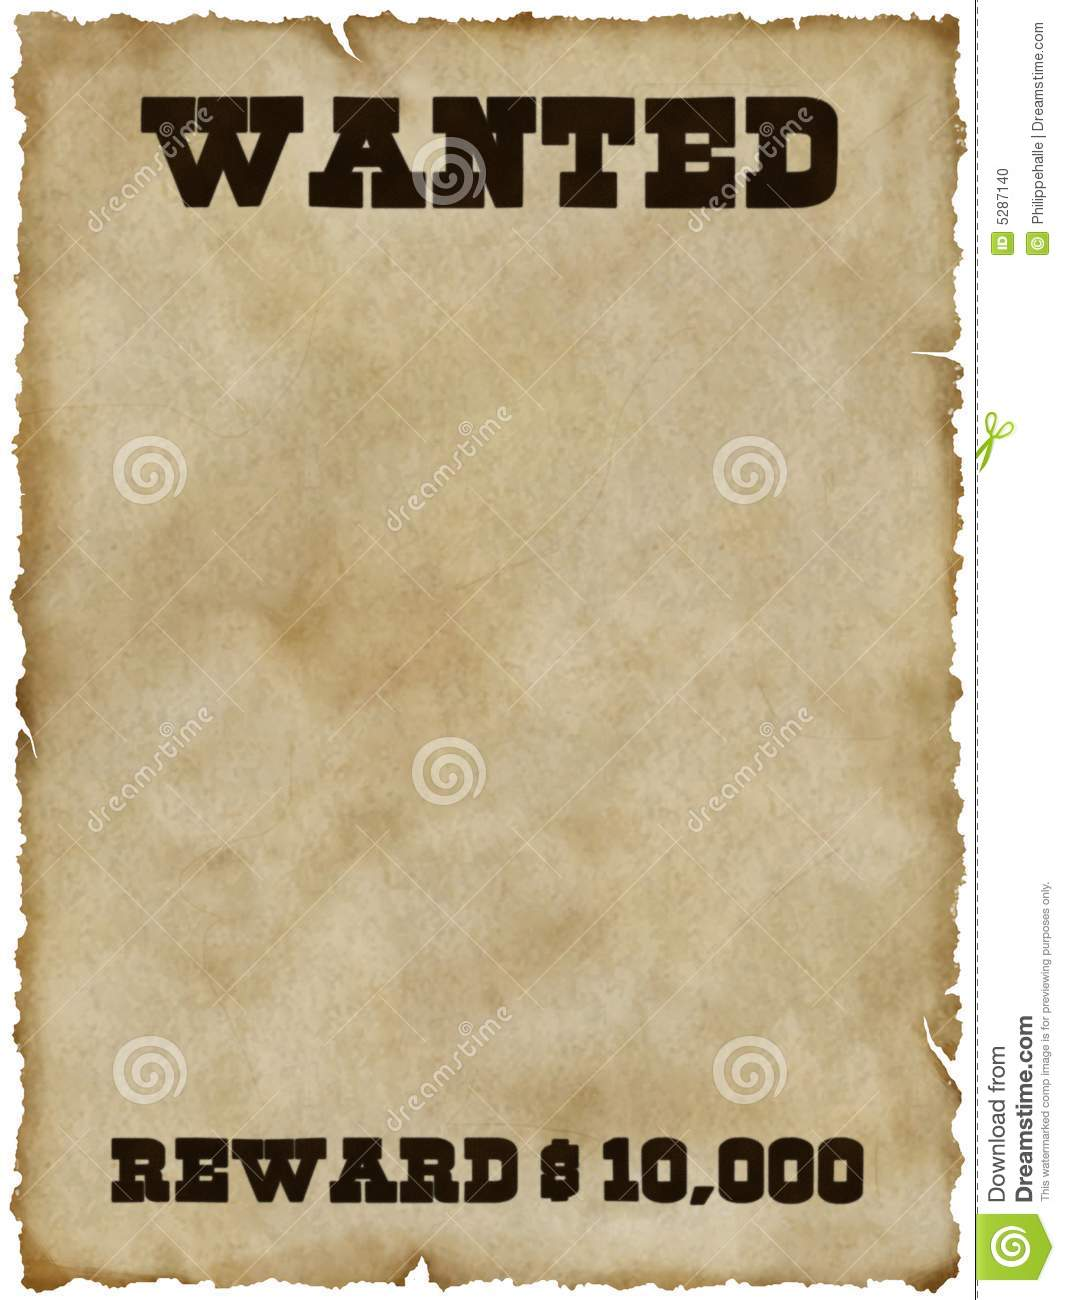 Wanted Poster With Clipping Path Stock Photo Image